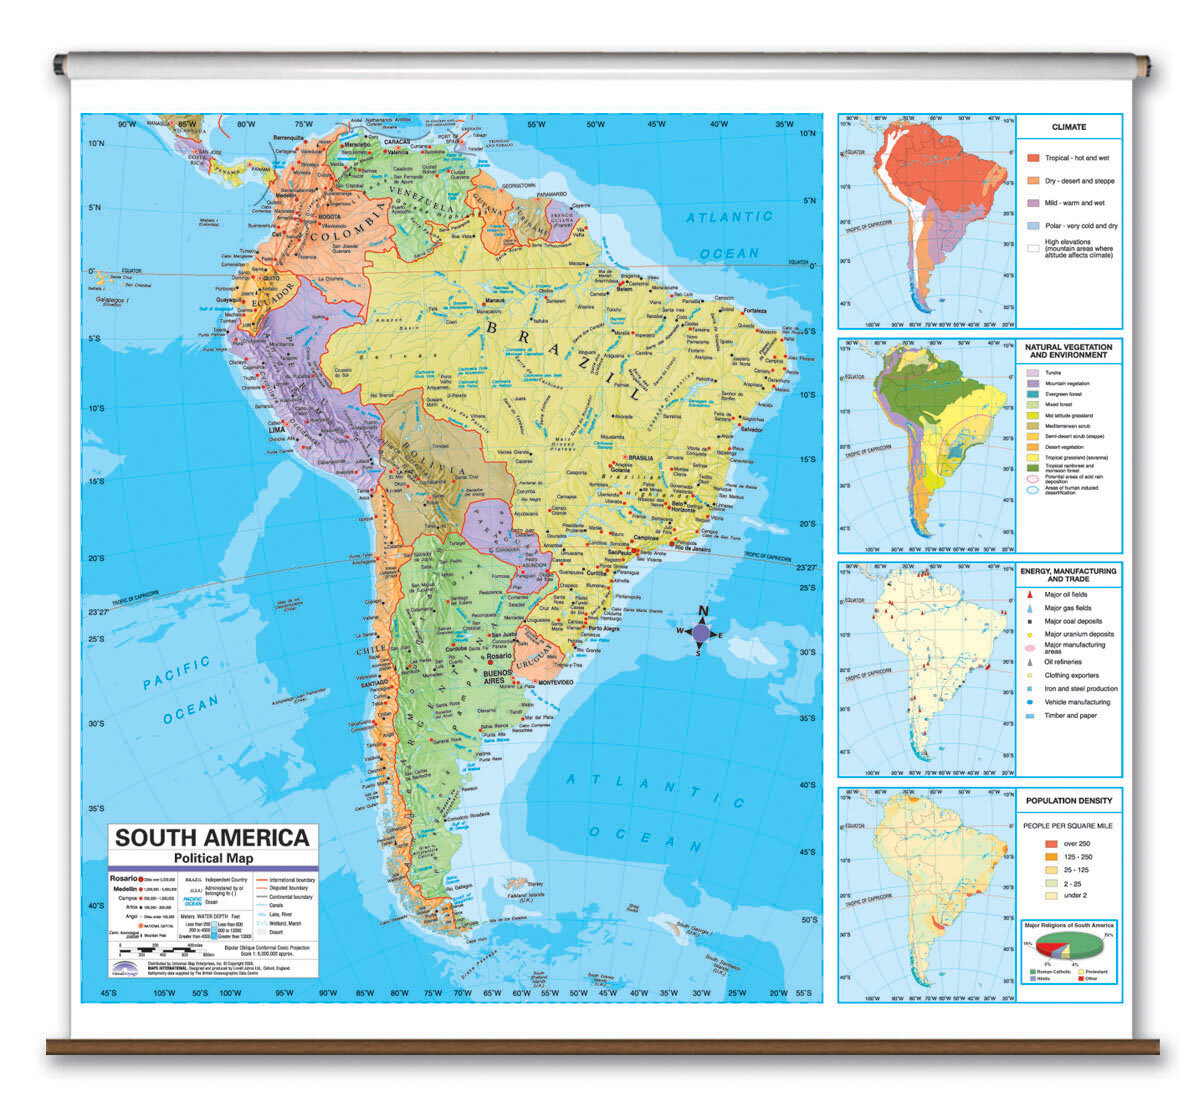 Universal Map Advanced Political Map - South America | Wayfair